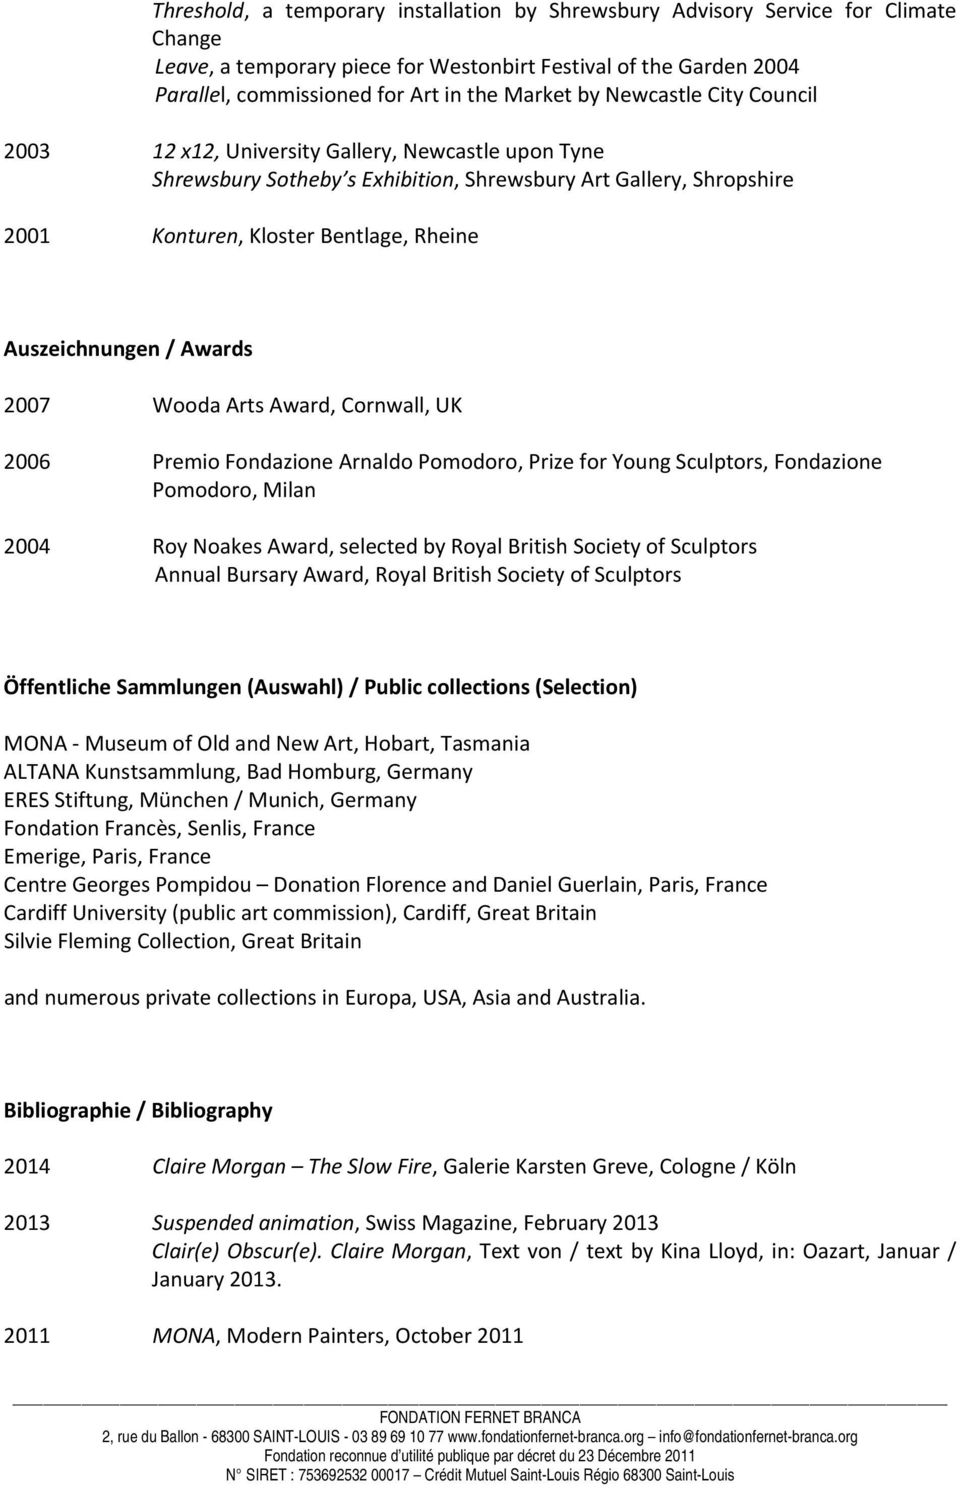 Auszeichnungen / Awards 2007 Wooda Arts Award, Cornwall, UK 2006 Premio Fondazione Arnaldo Pomodoro, Prize for Young Sculptors, Fondazione Pomodoro, Milan 2004 Roy Noakes Award, selected by Royal